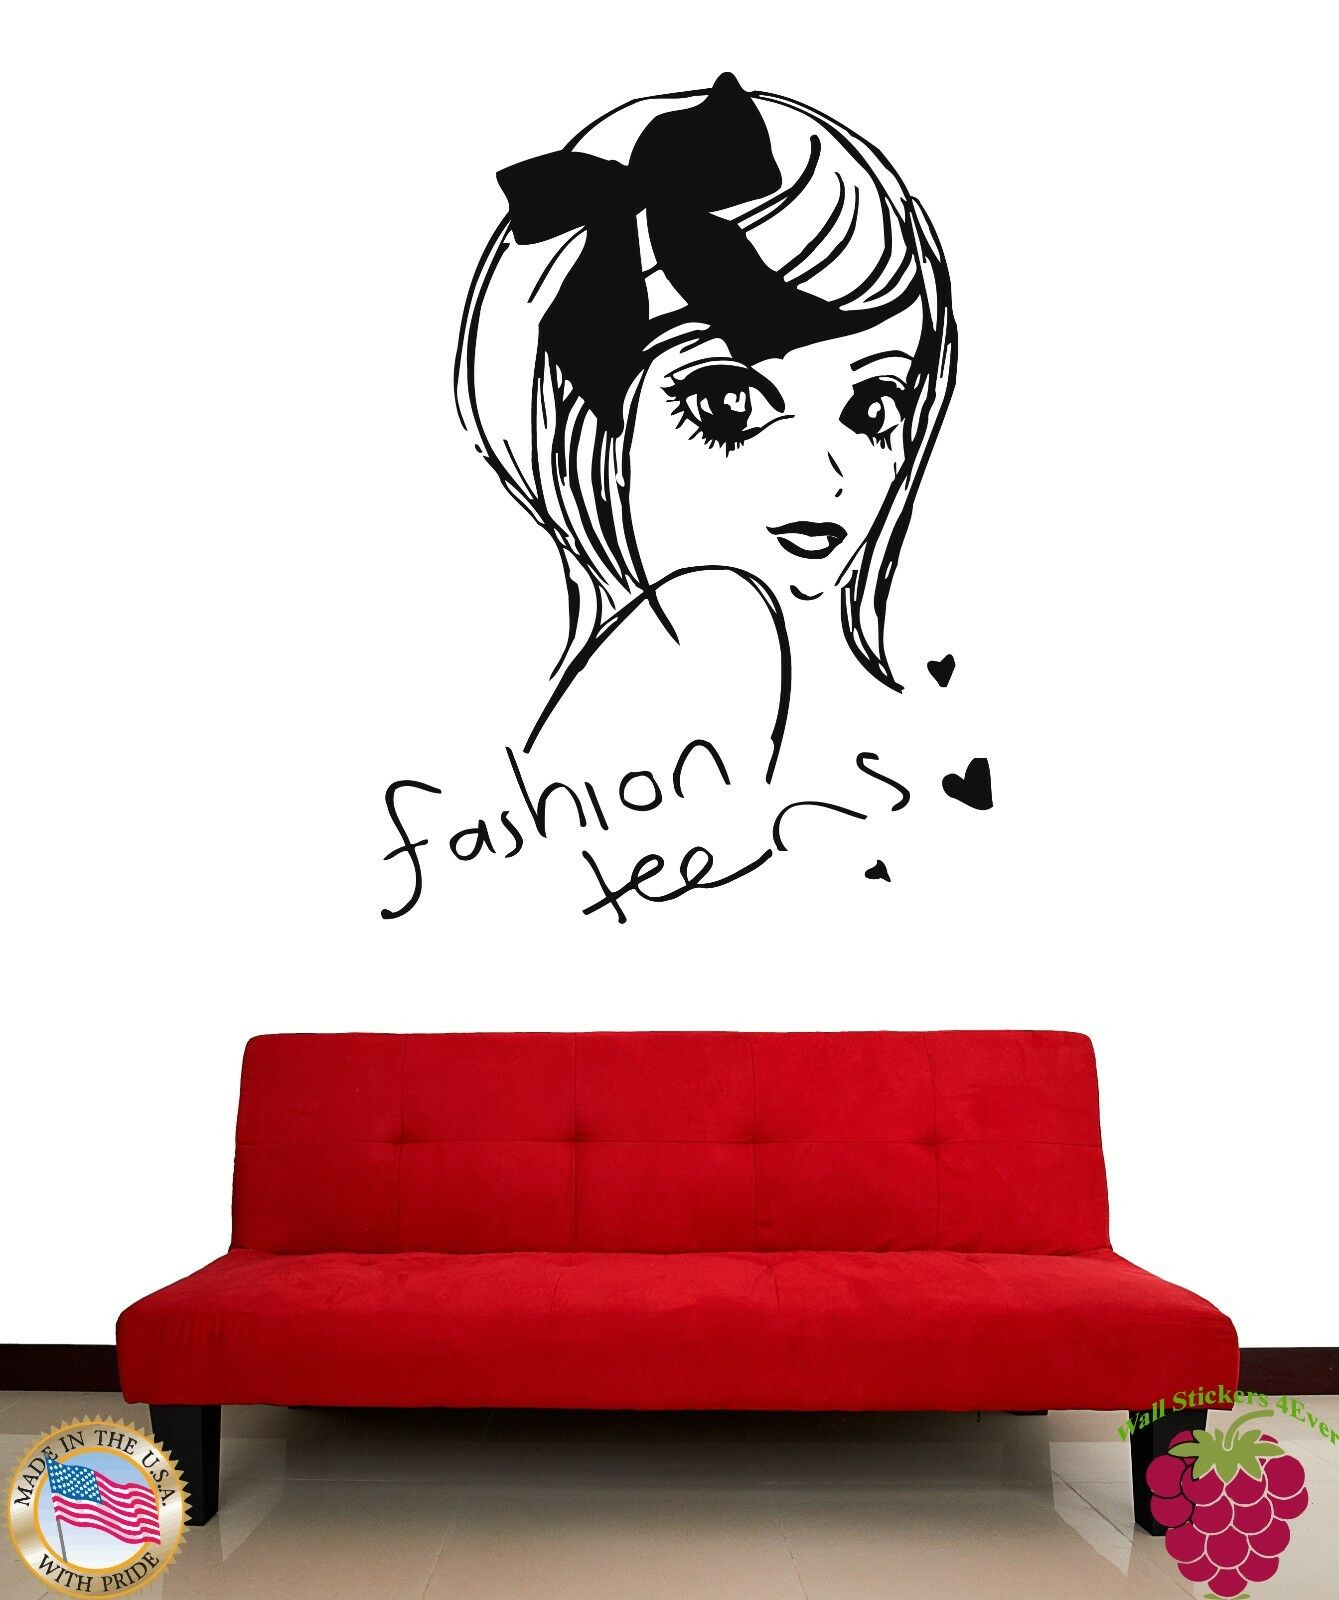 Wall stickers girl teen fashion teens cool decor for you z1894 ebay amipublicfo Images